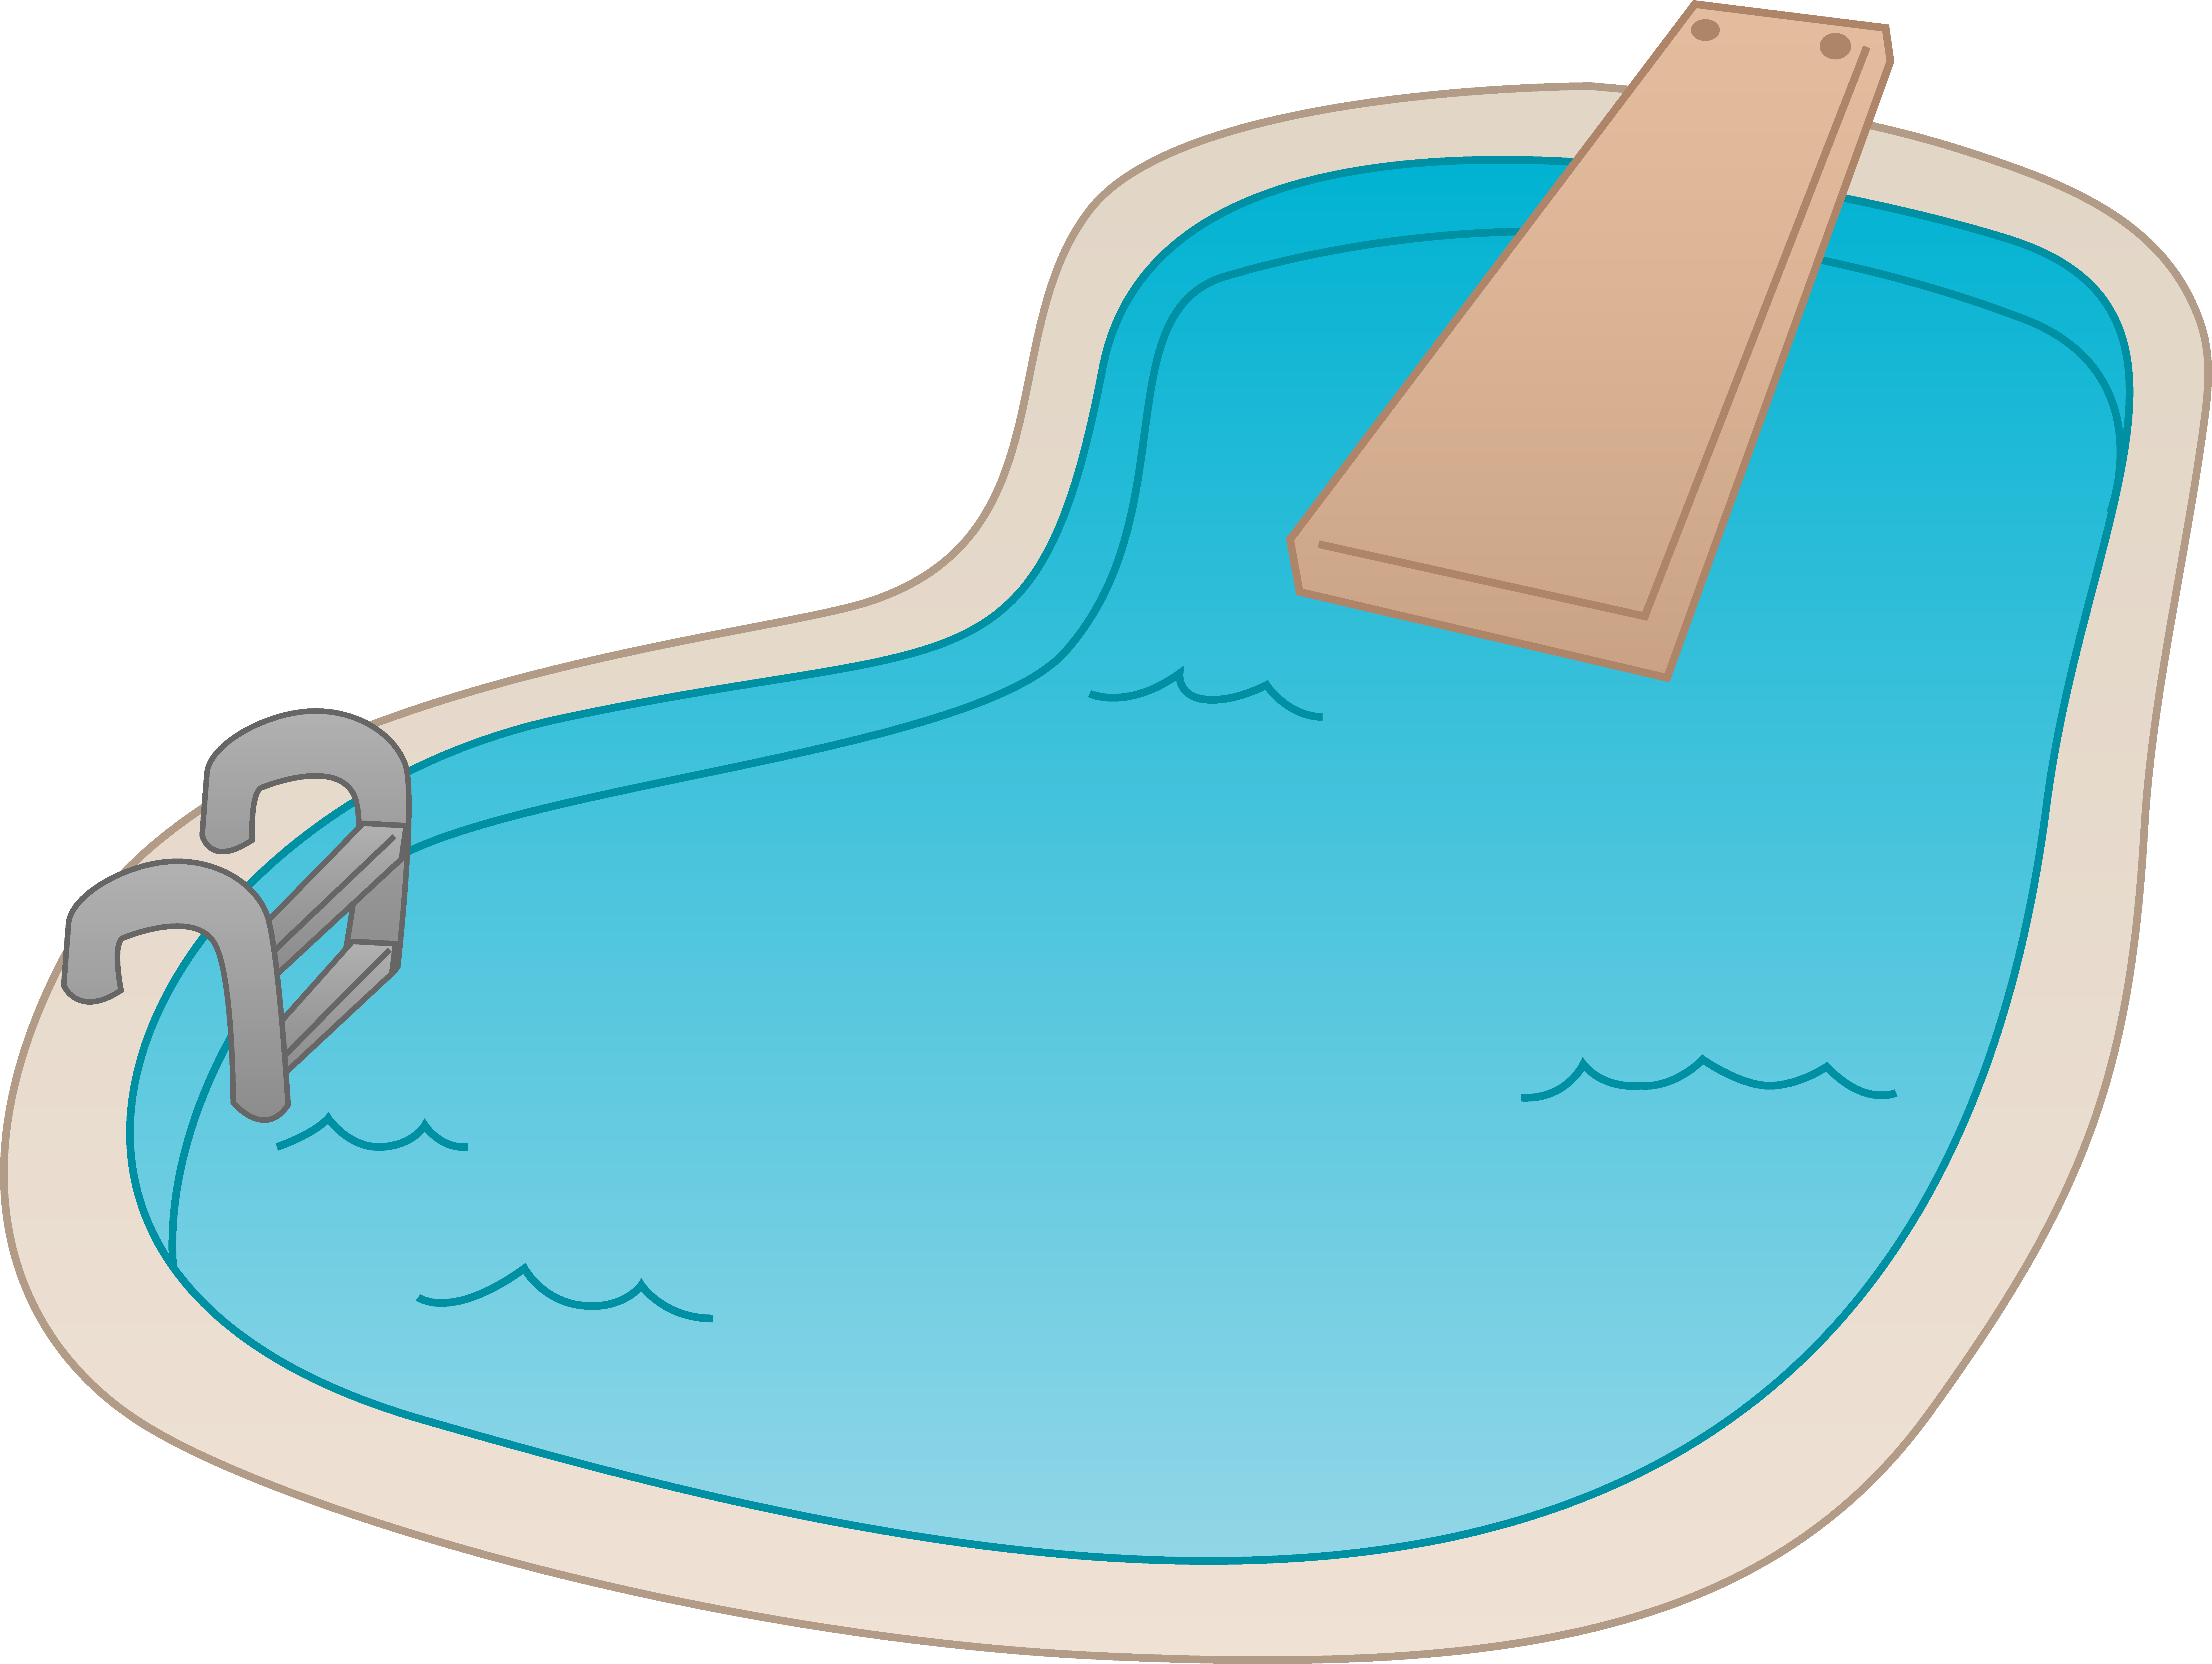 Pool clipart #2, Download drawings